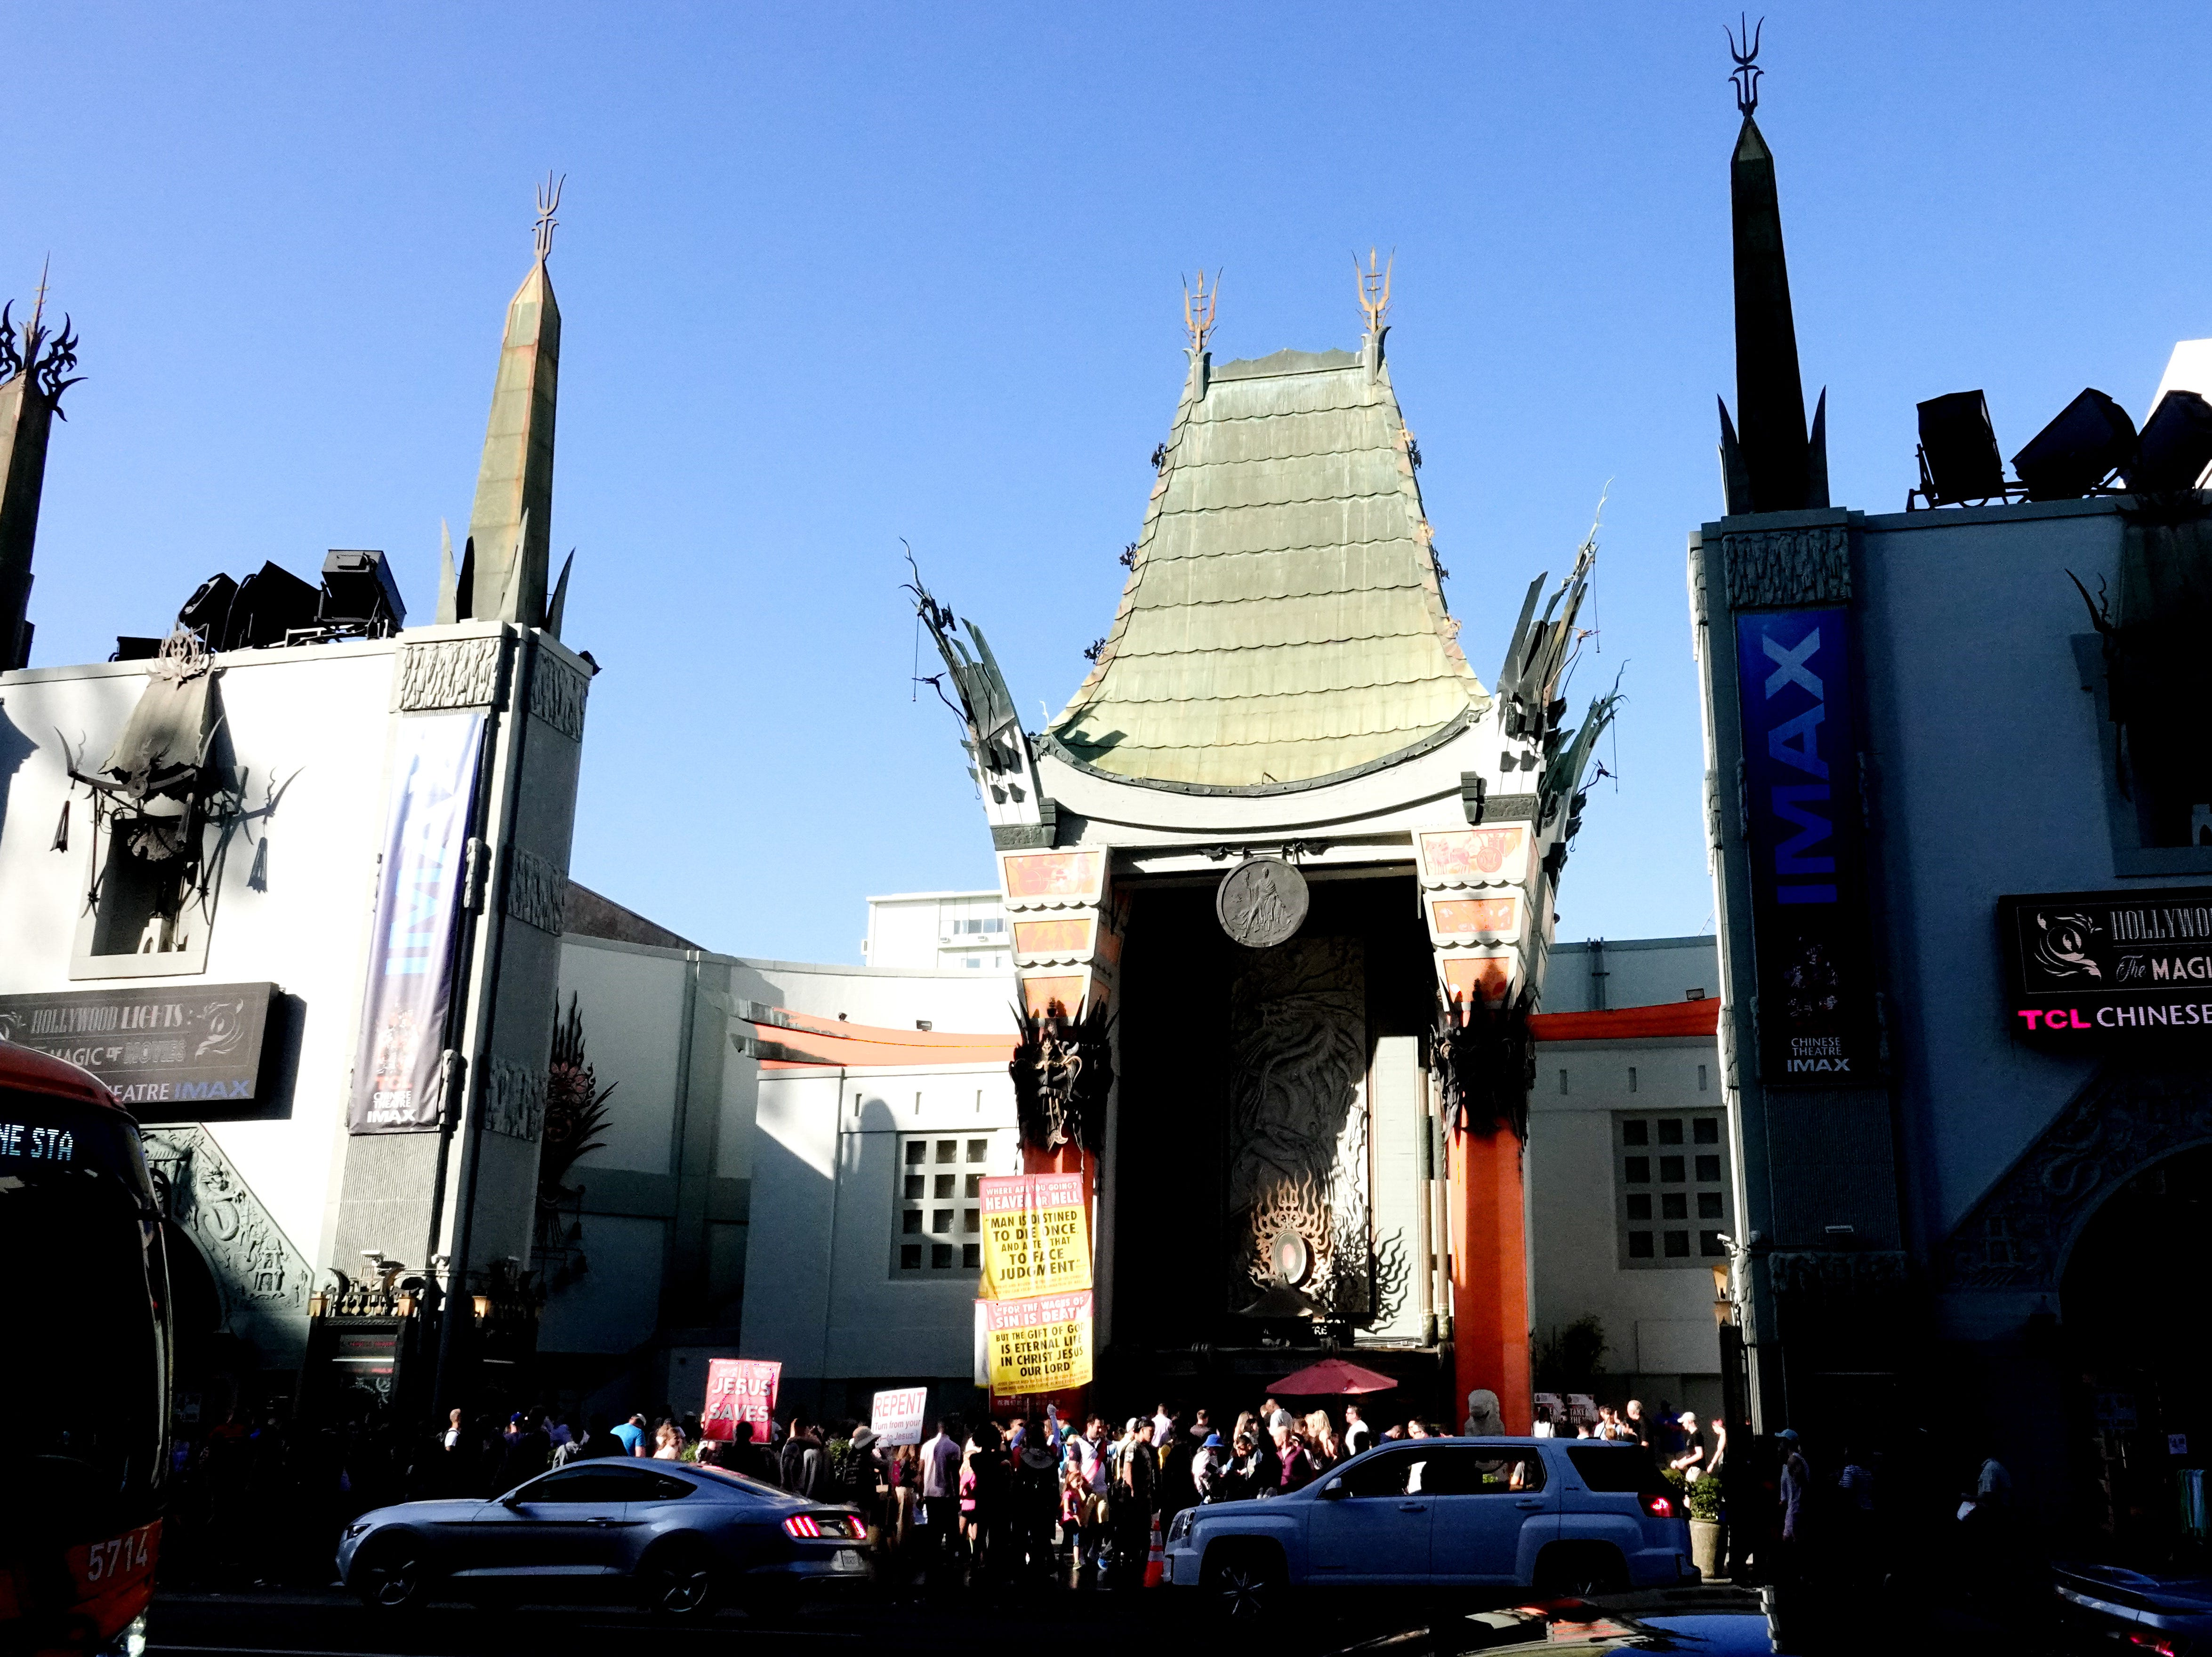 The iconic TCL Chinese Theater on the Hollywood Walk of Fame